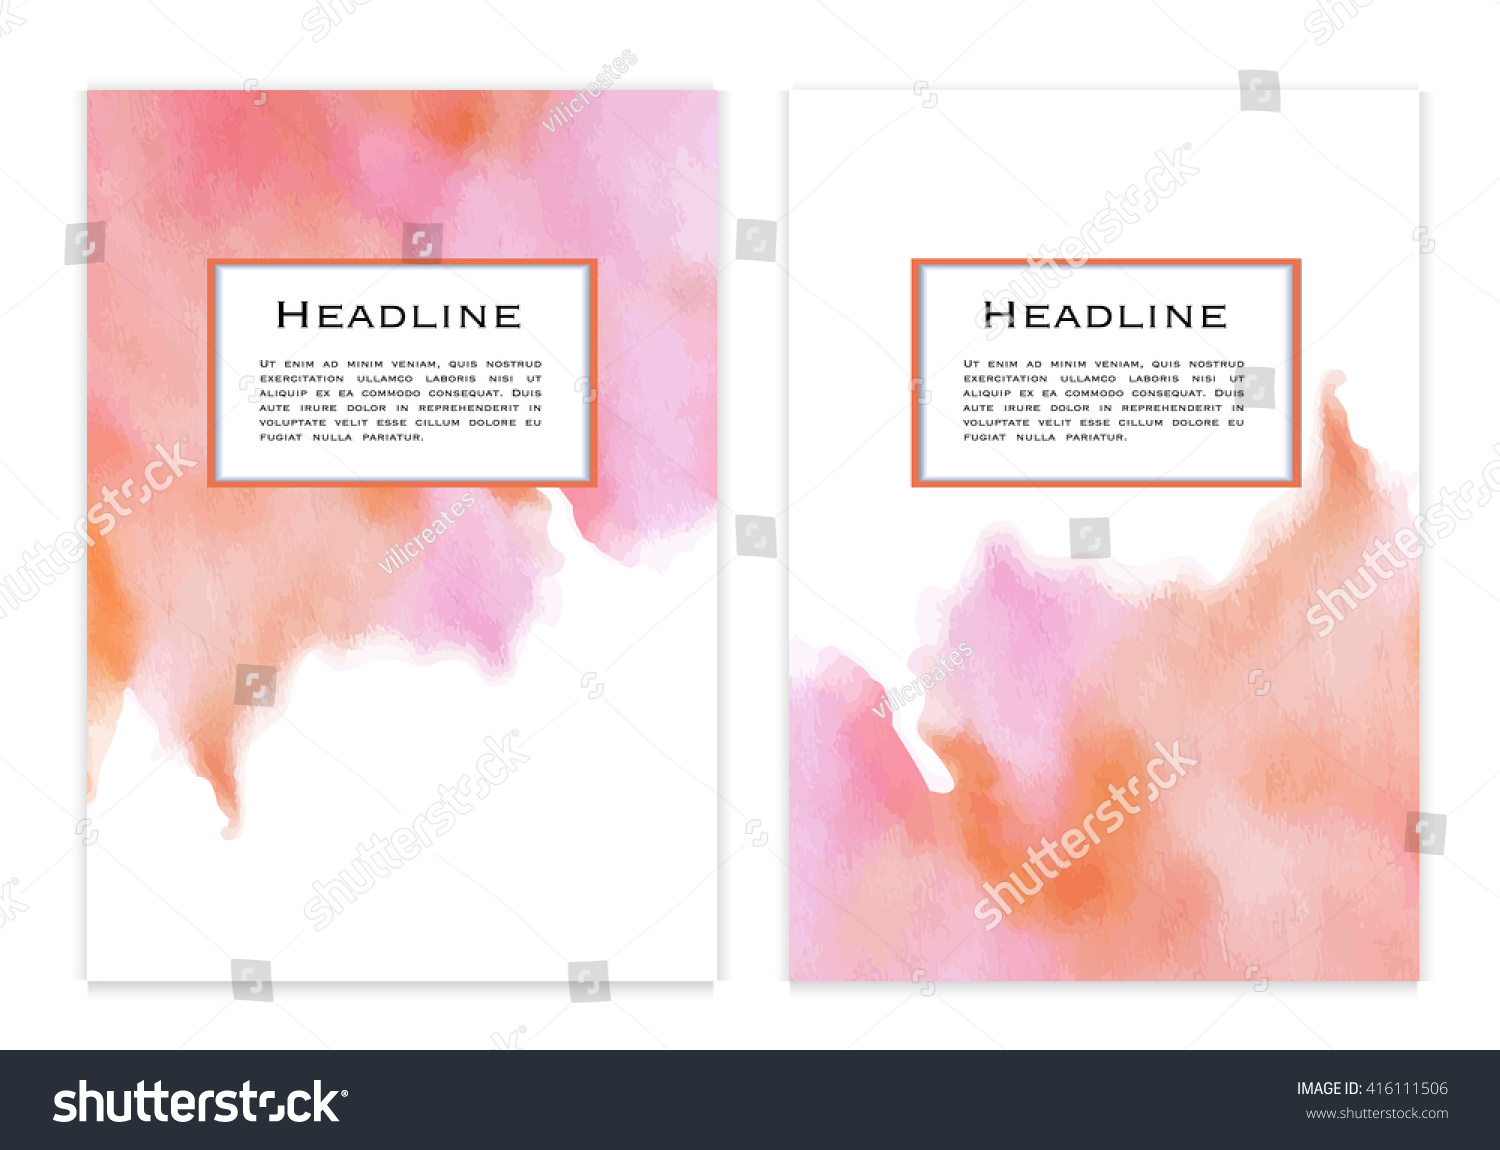 Watercolor book covers - A4 Size Flyers Vouchers Posters Annual Report Or Book Covers With Watercolor Background